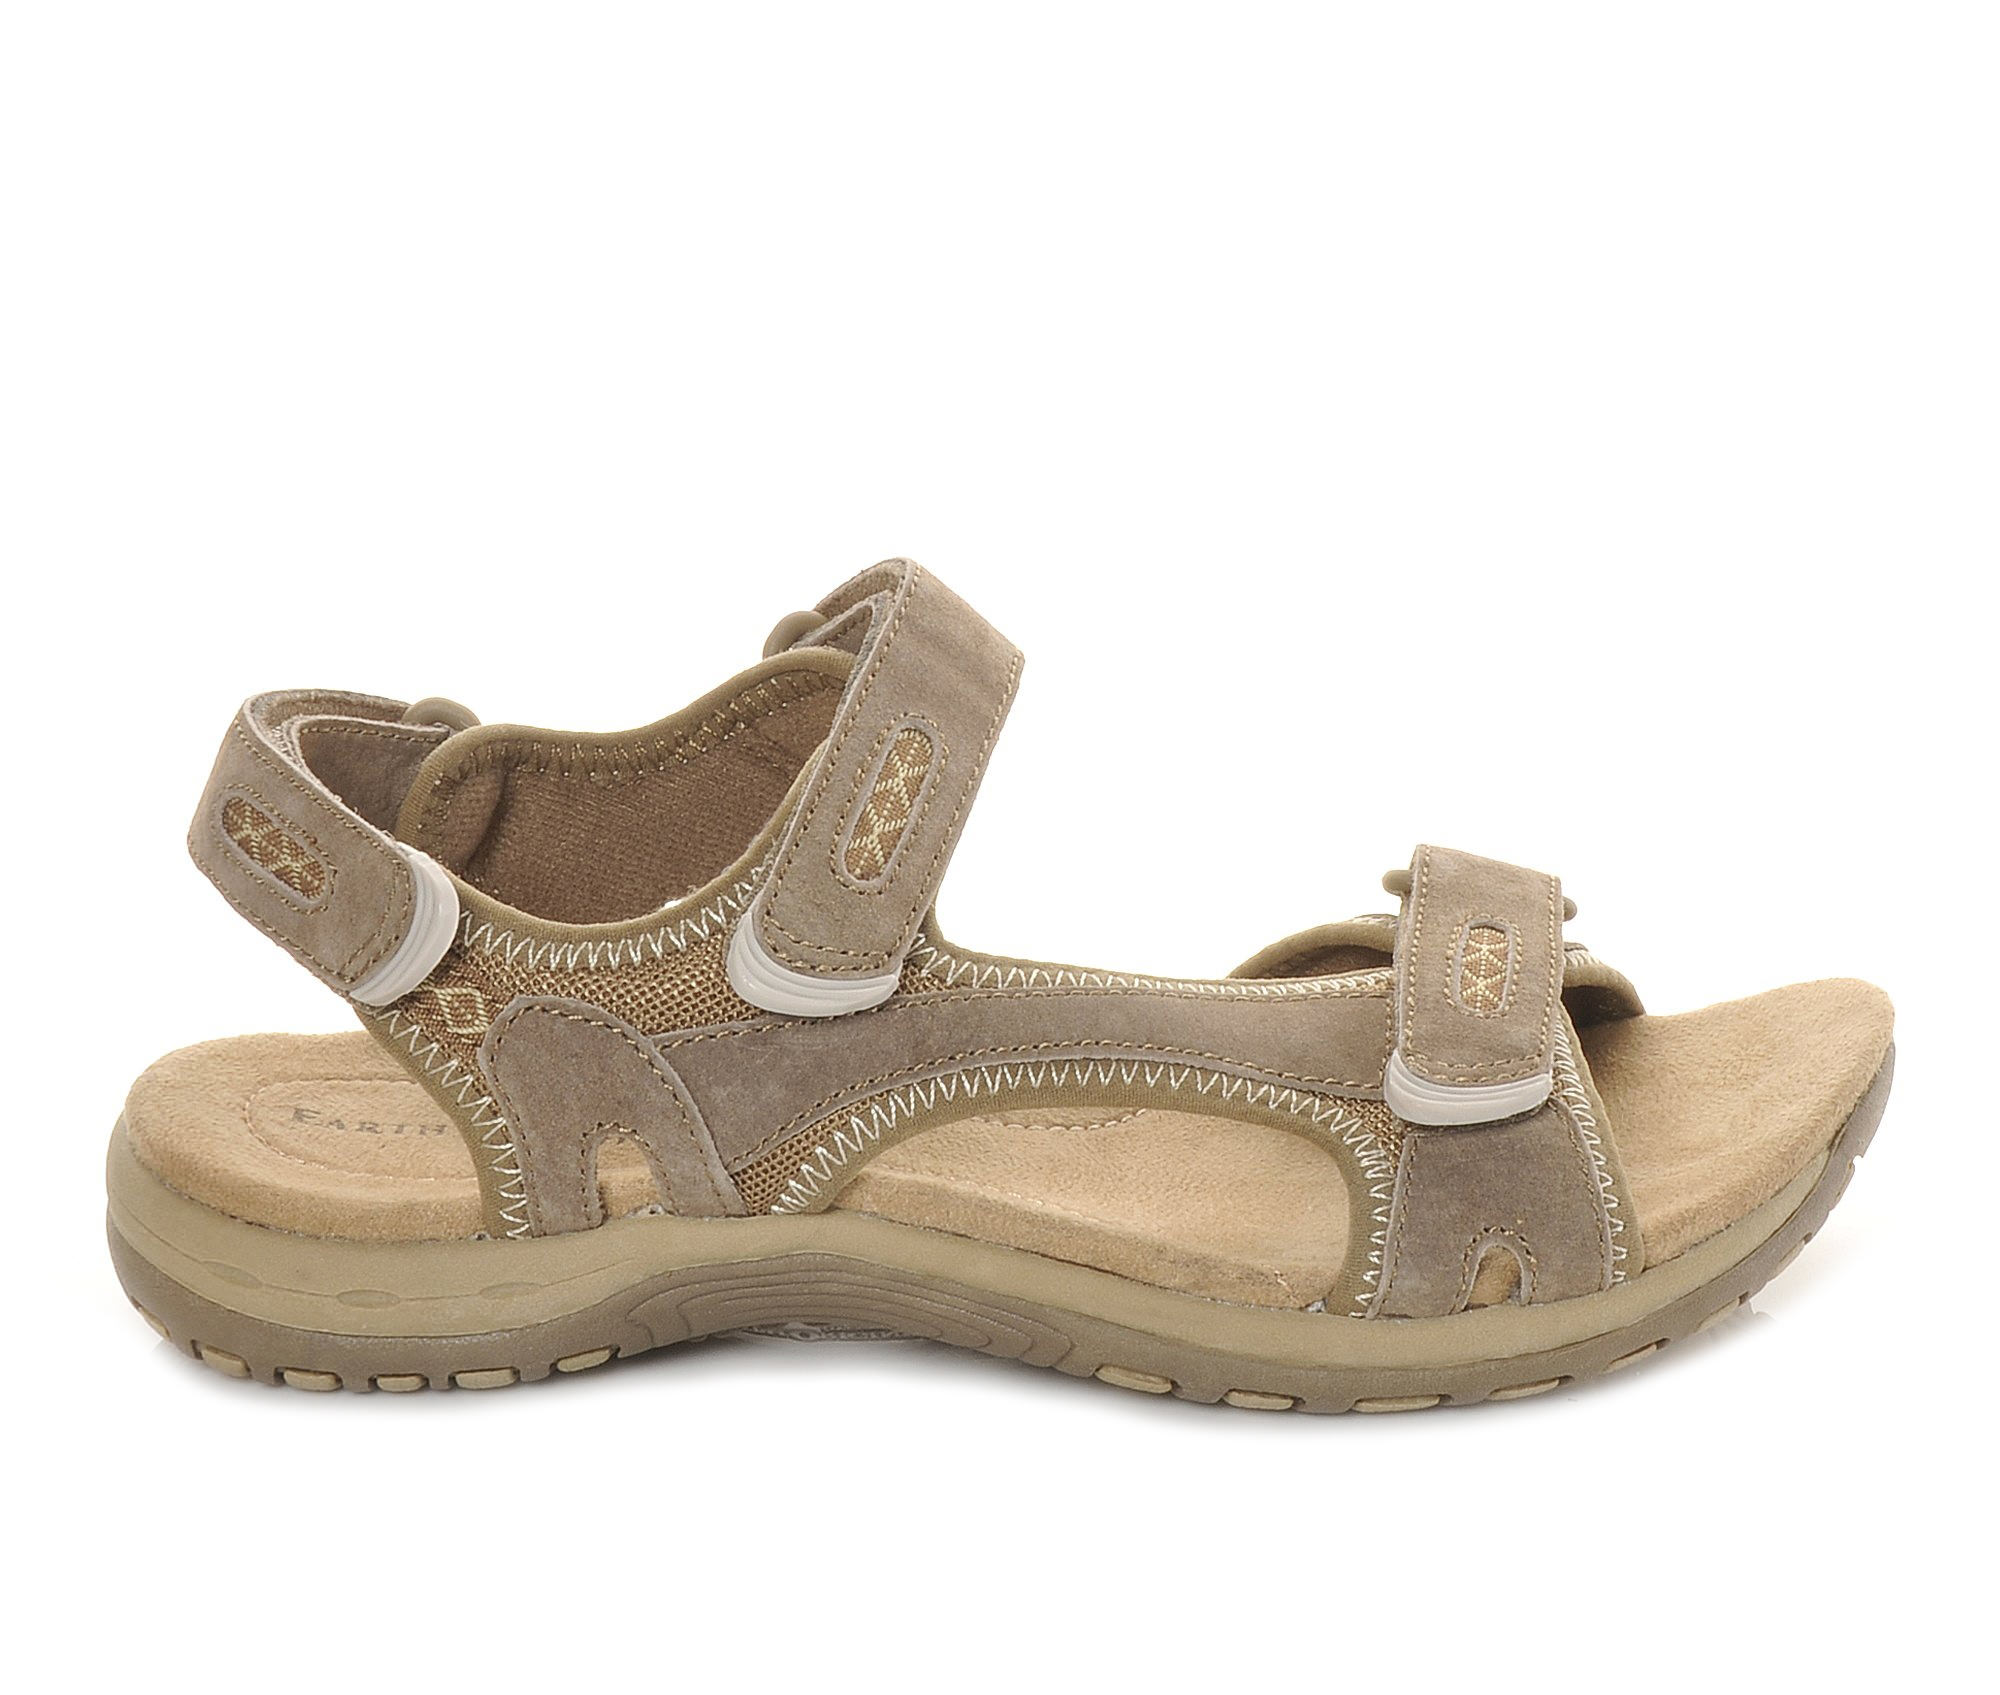 Women's Earth Origins Brinkley Sandals (Beige)